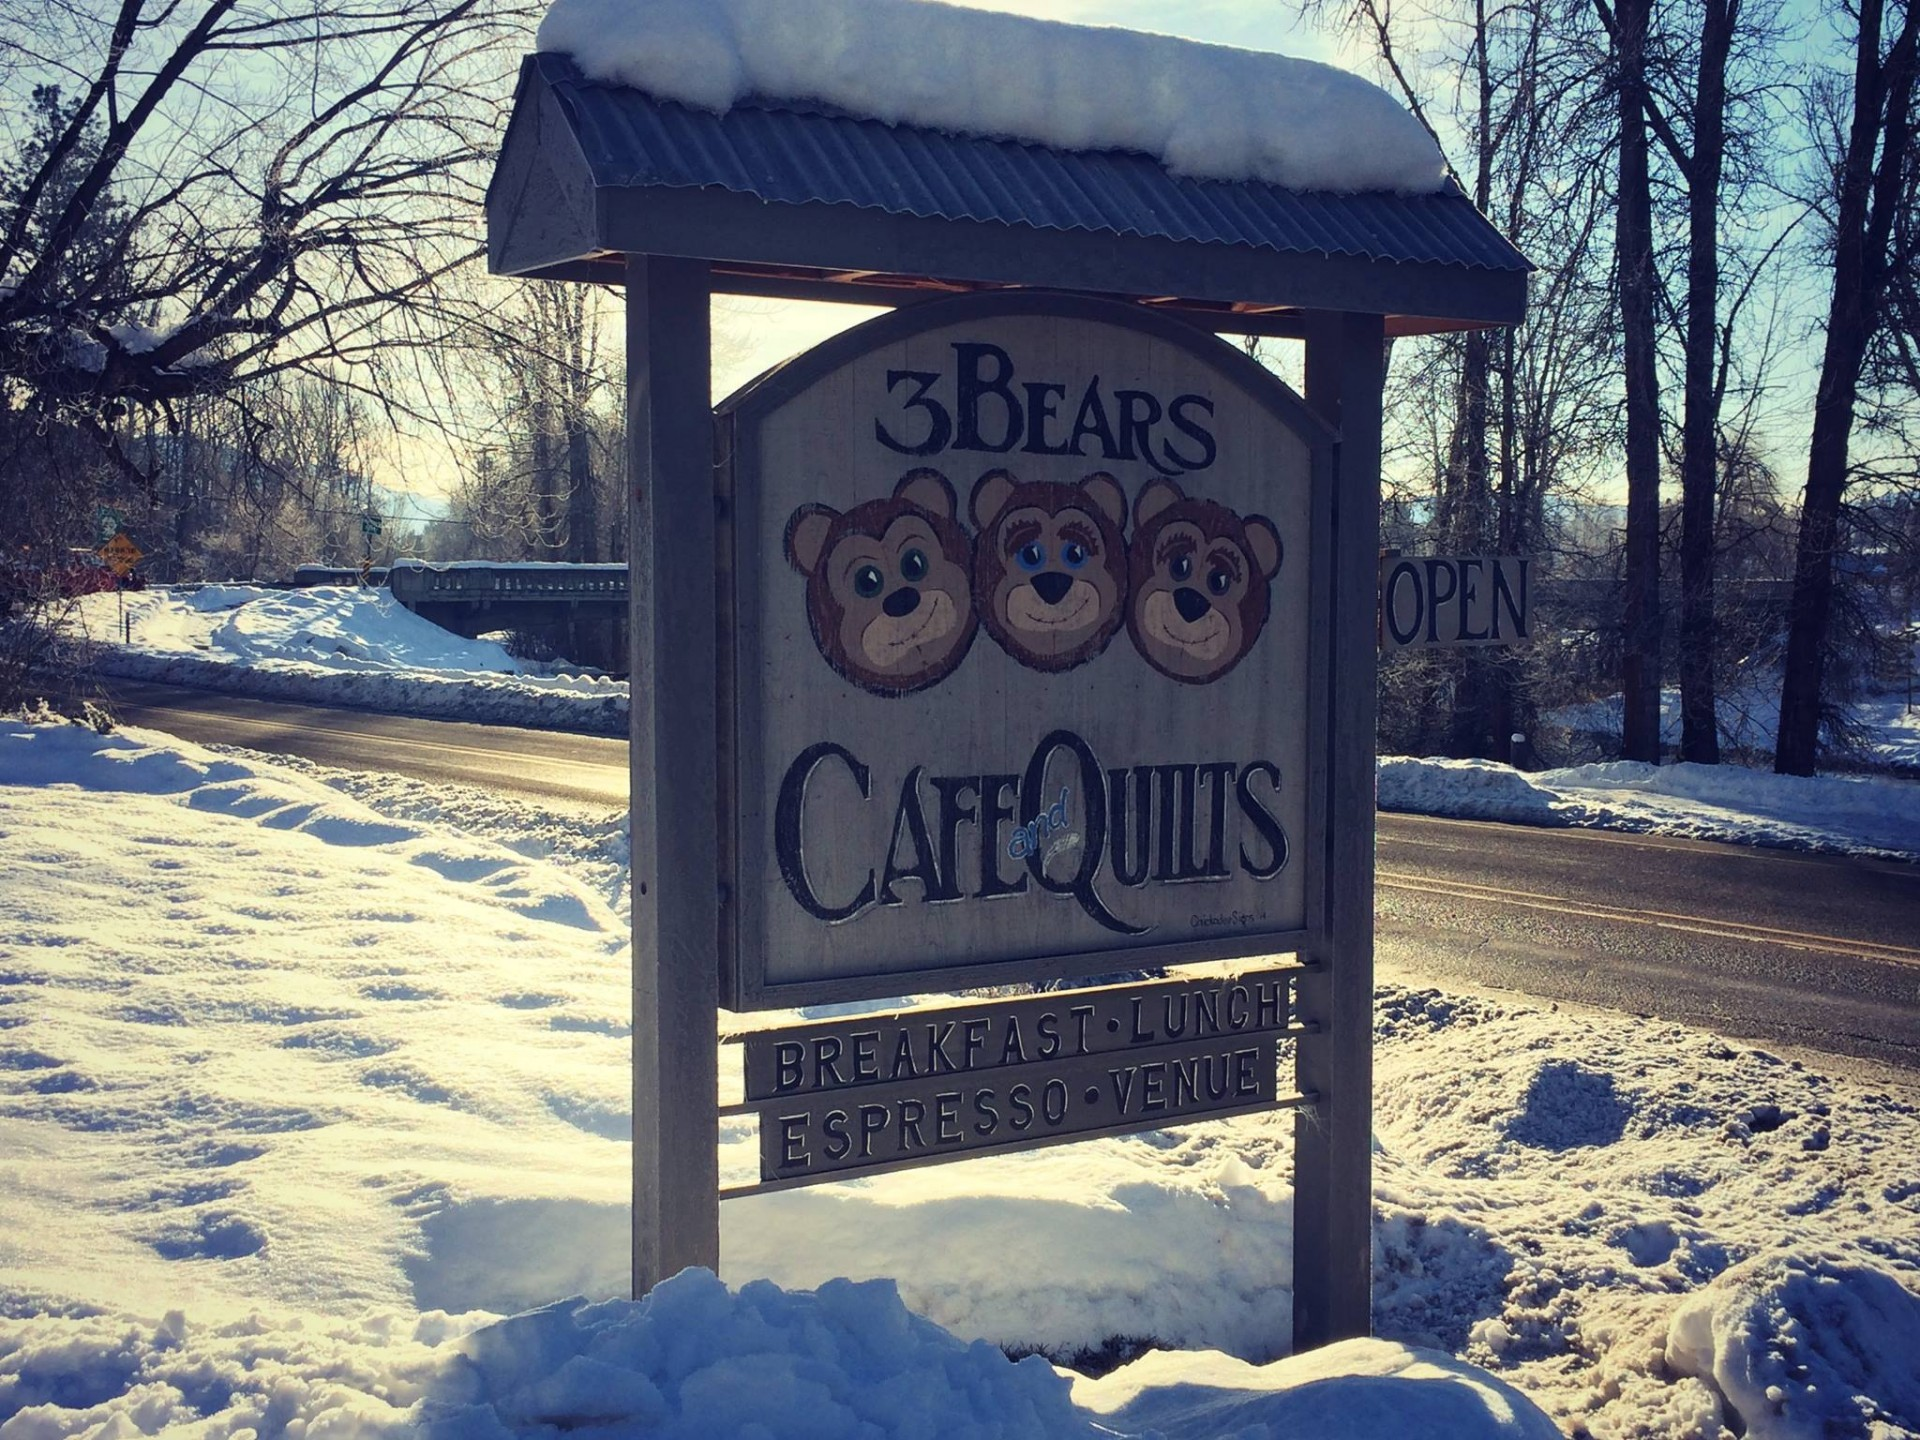 Three Bears Cafe & Quilts